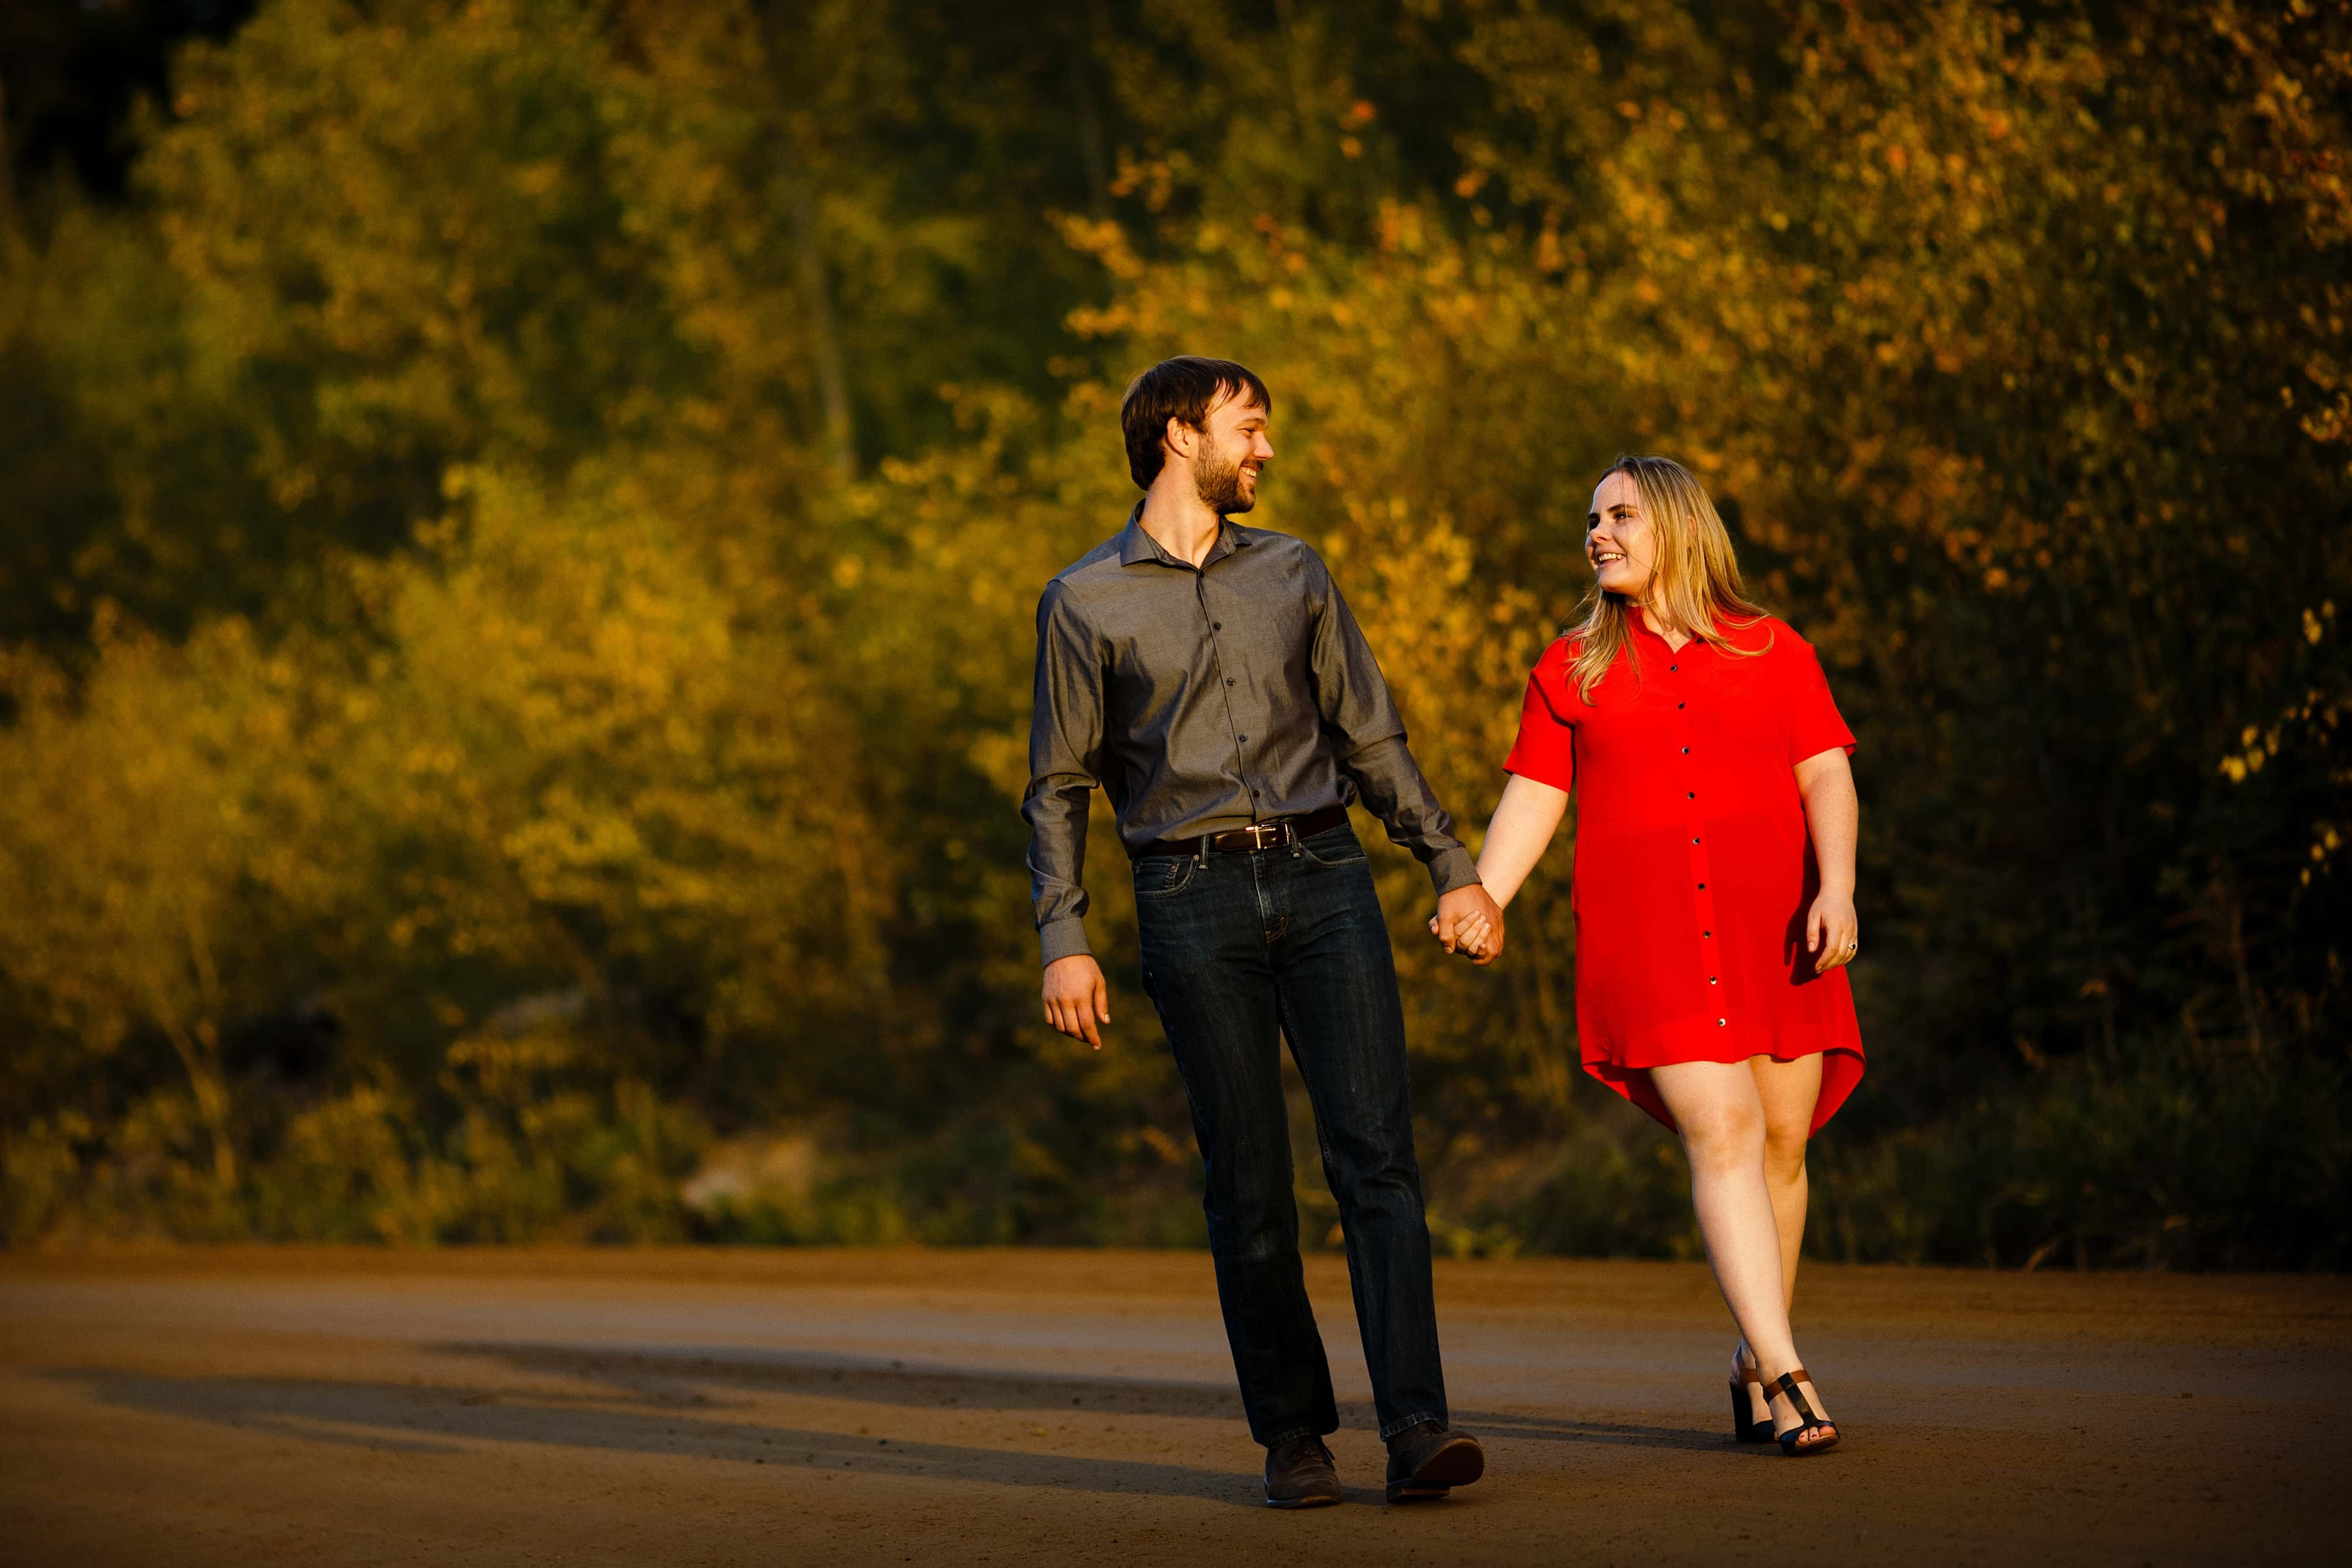 The couple walks along Gap road during their fall Golden engagement